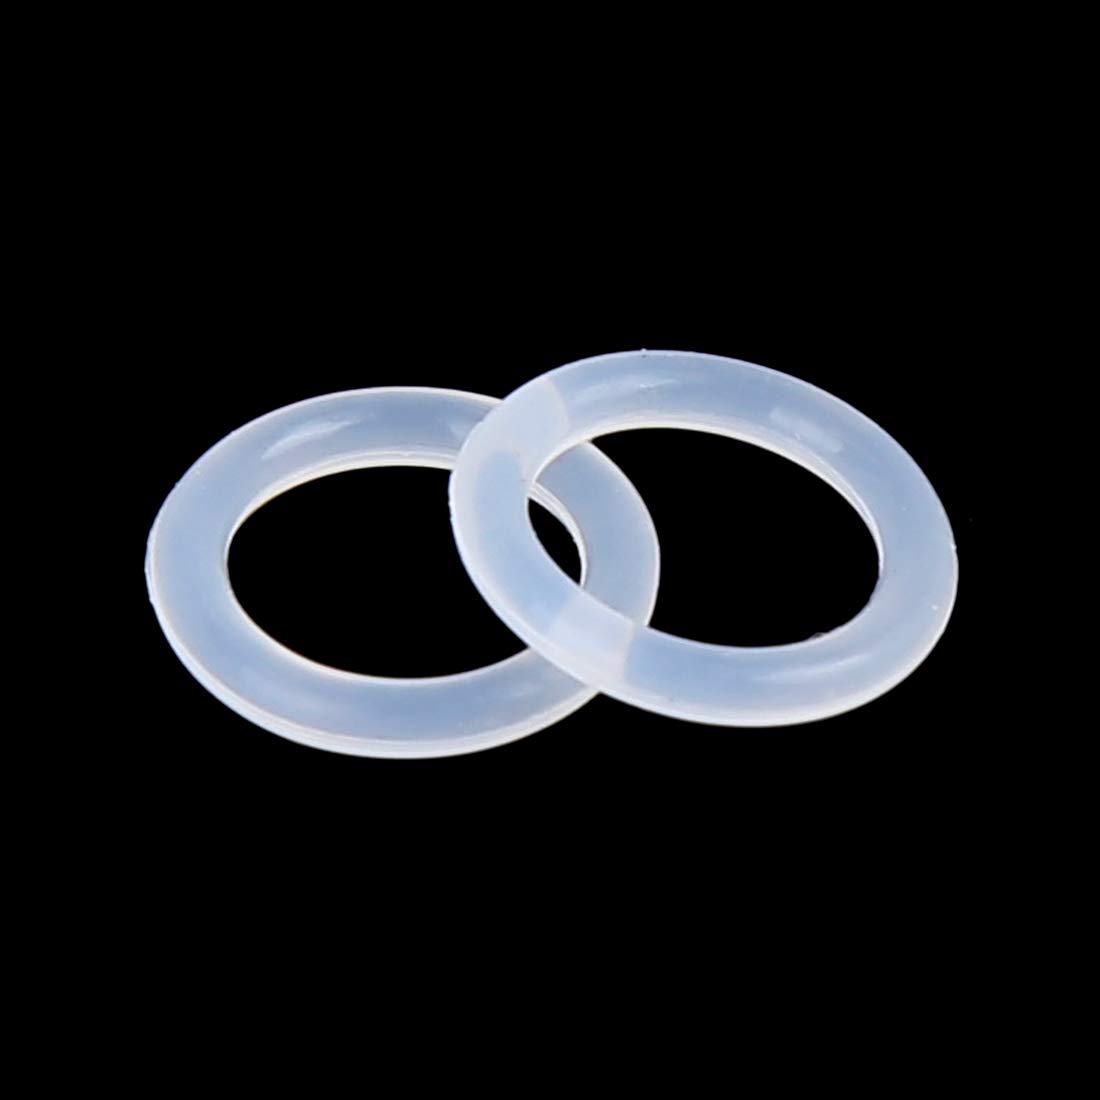 X AUTOHAUX 100pcs White Silicone O-Ring Sealing Gasket Washer 10mm X 1.5mm